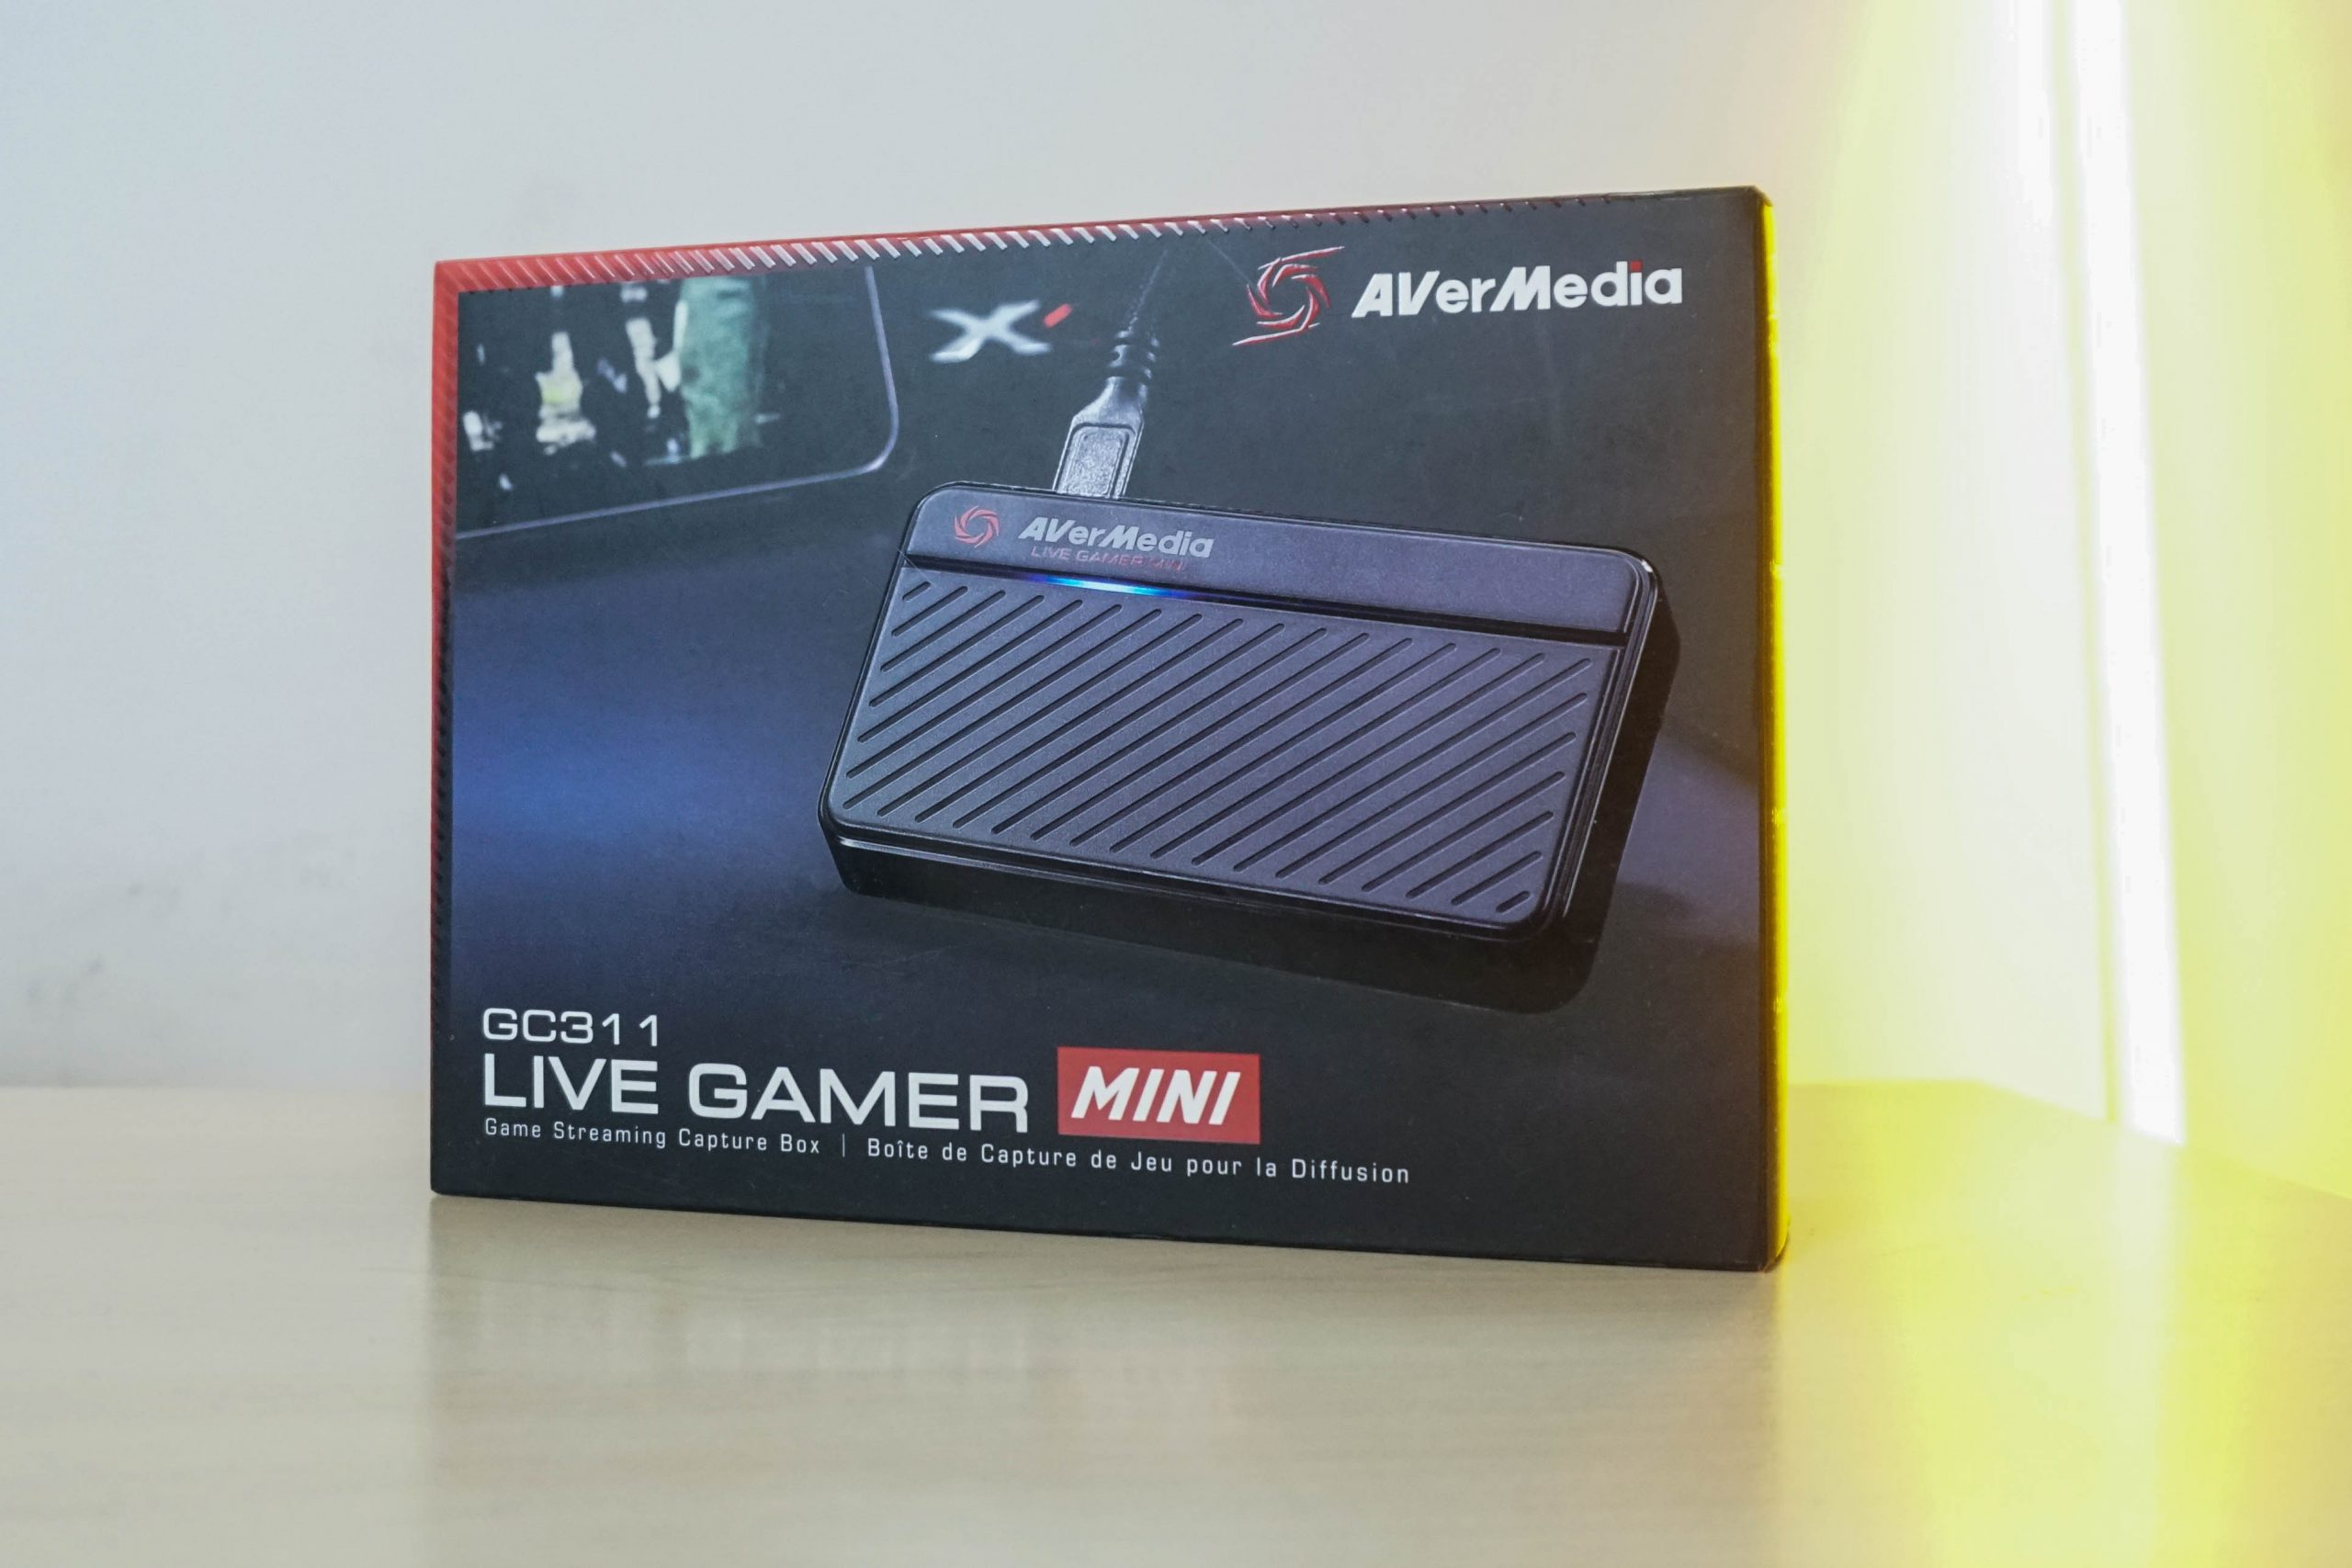 """On hand AVerMedia Live Gamer MINI GC311: Capture """"small but mighty"""" to help you play games anywhere - VnReview"""